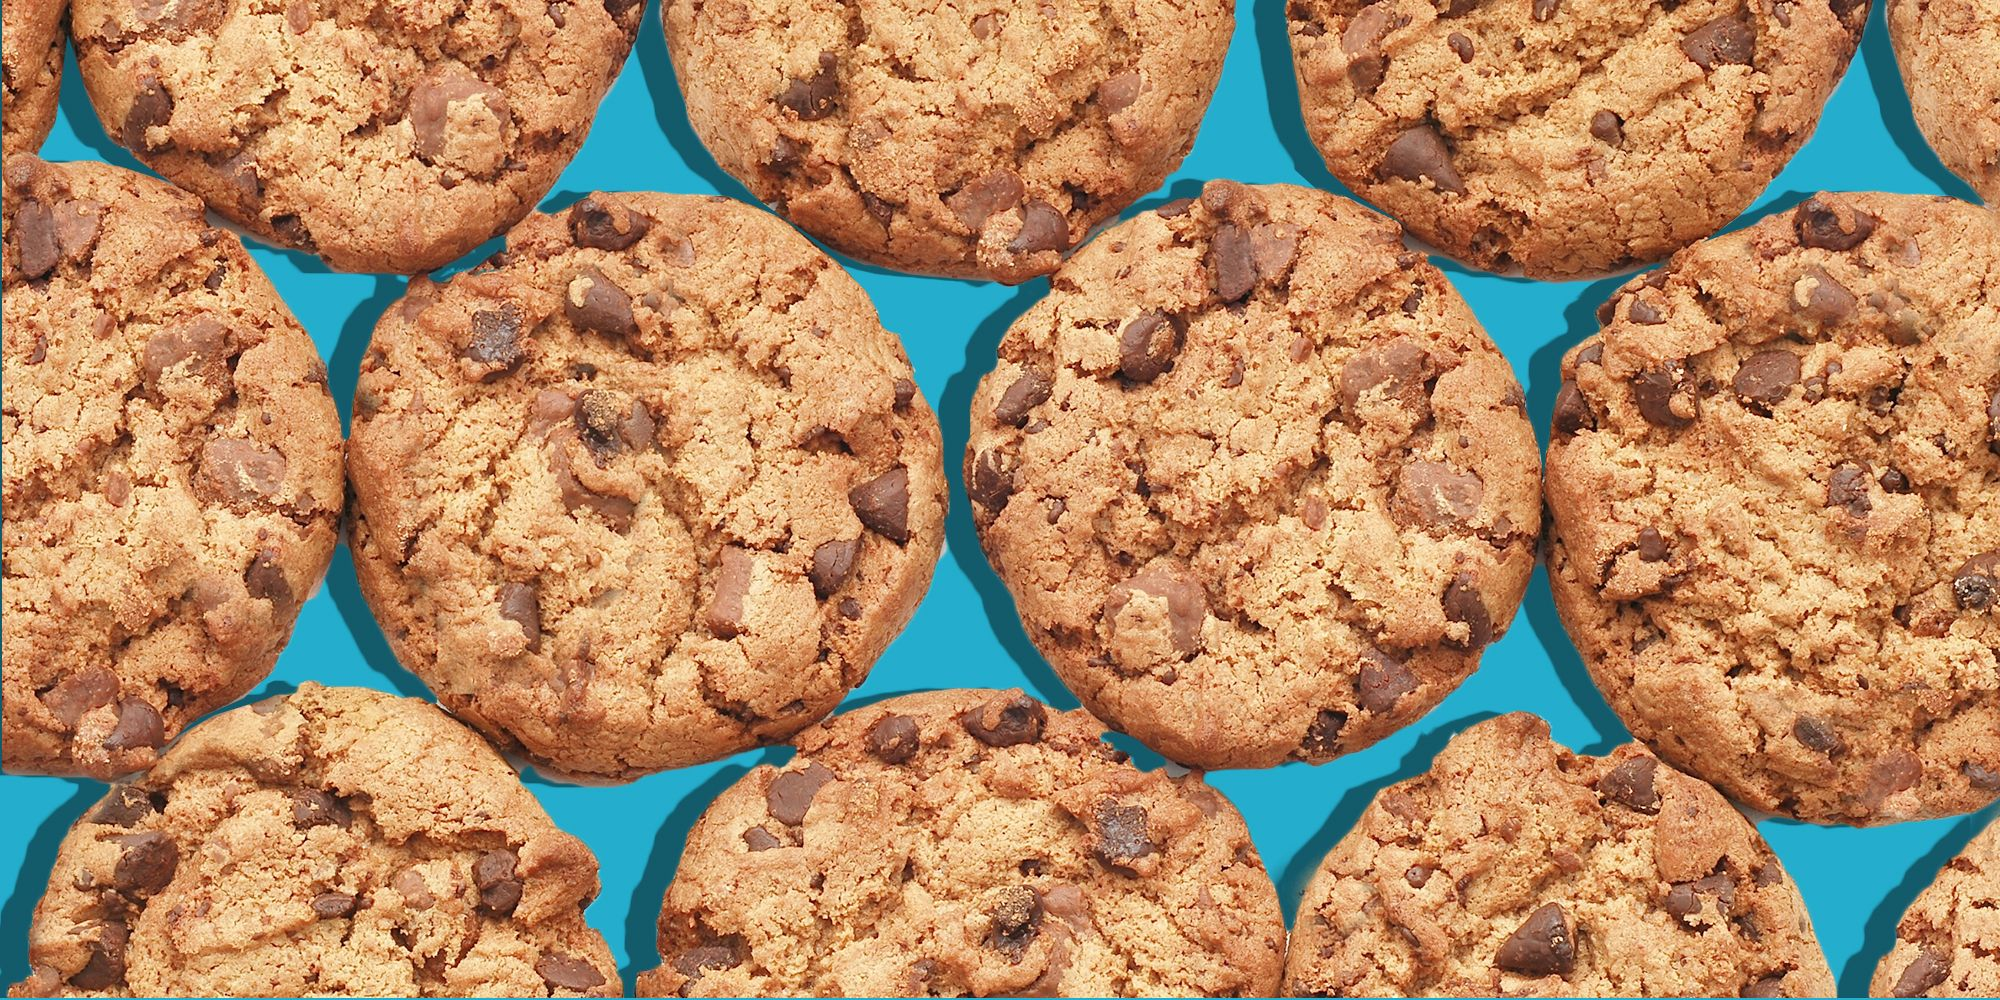 20 Best Chocolate Chip Cookie Brands to Buy in 2018 Best Store